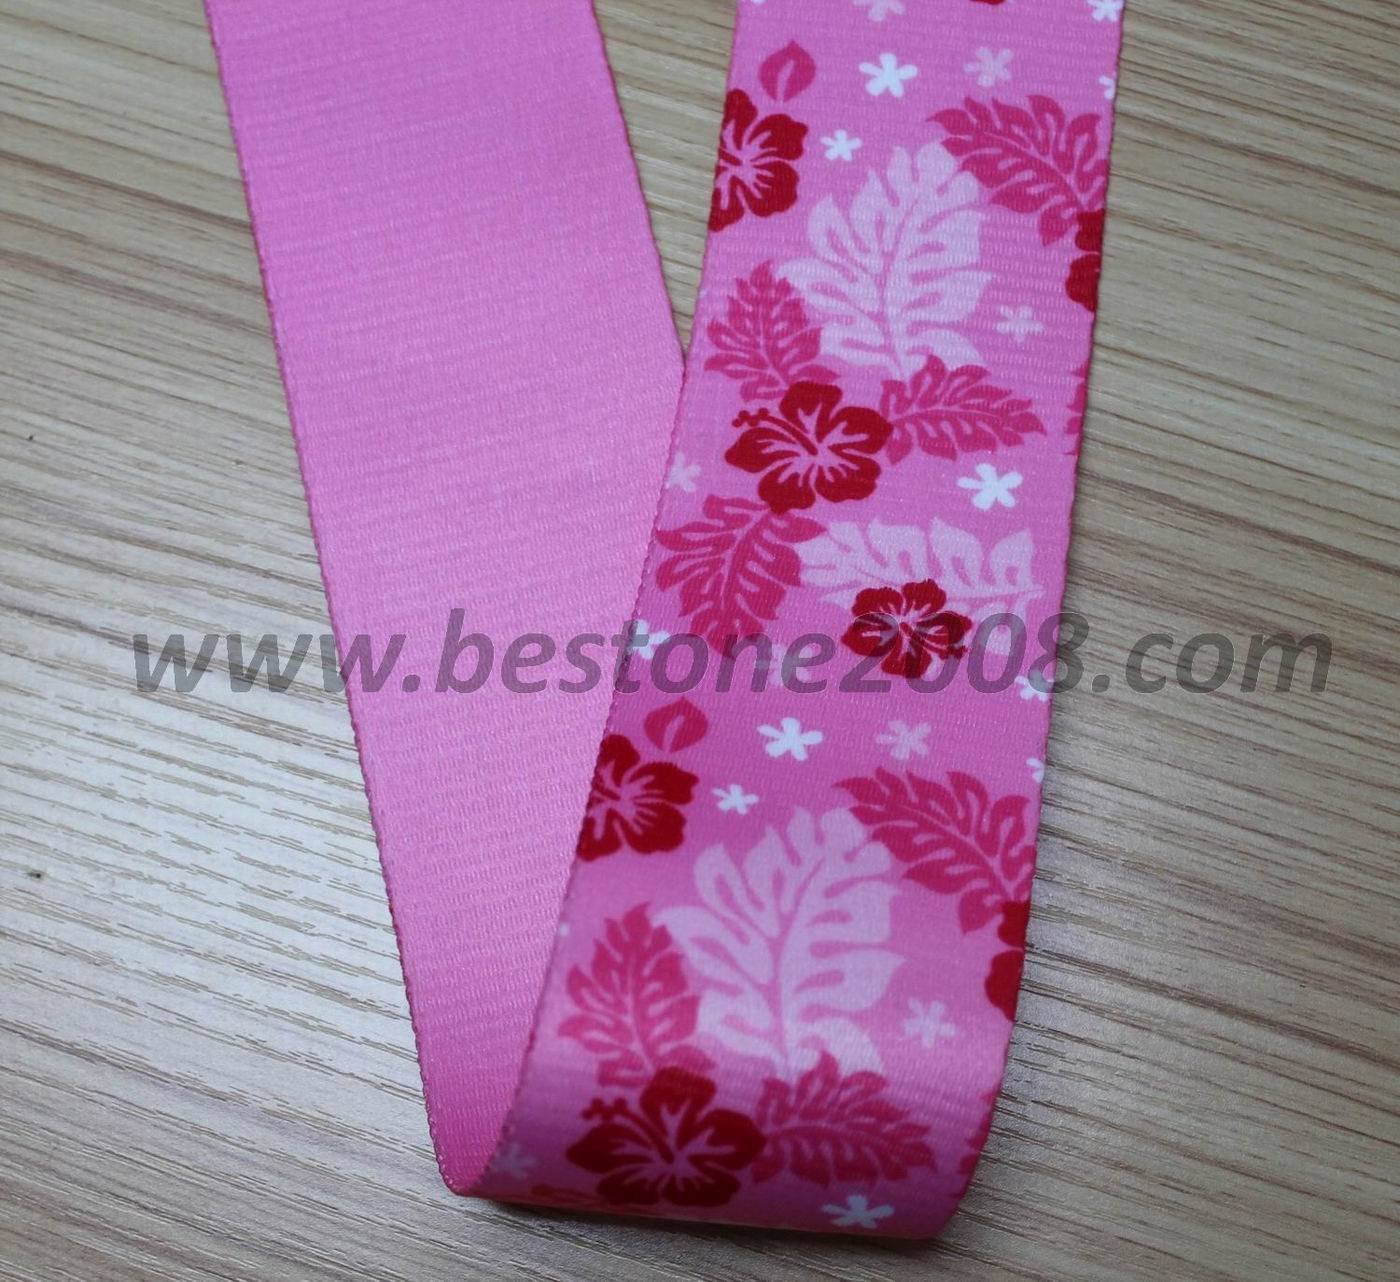 Factory High Quality Printing Webbing for Garment #1312-3